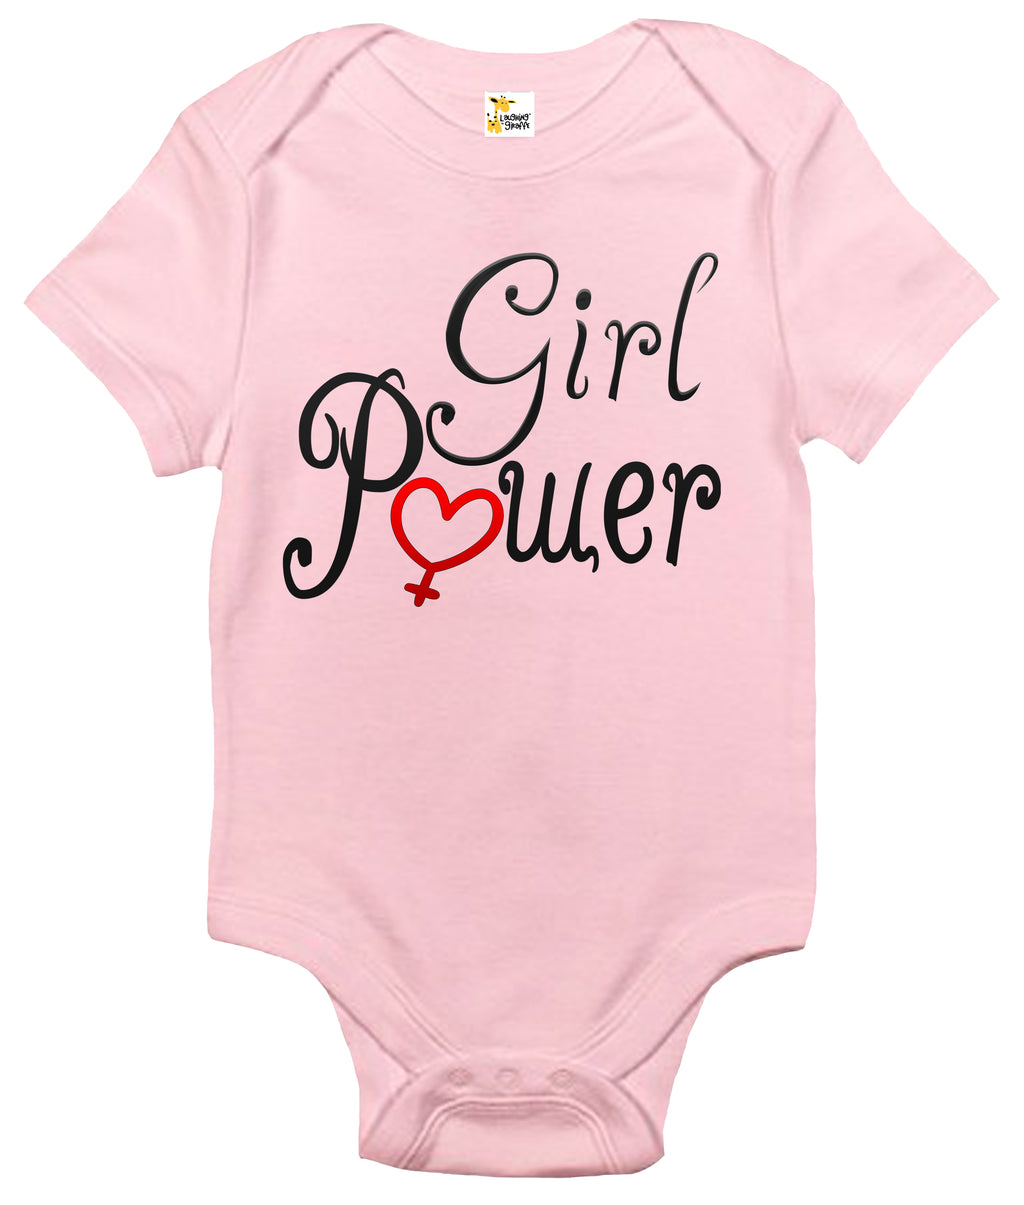 Baby Bodysuit - Girl Power